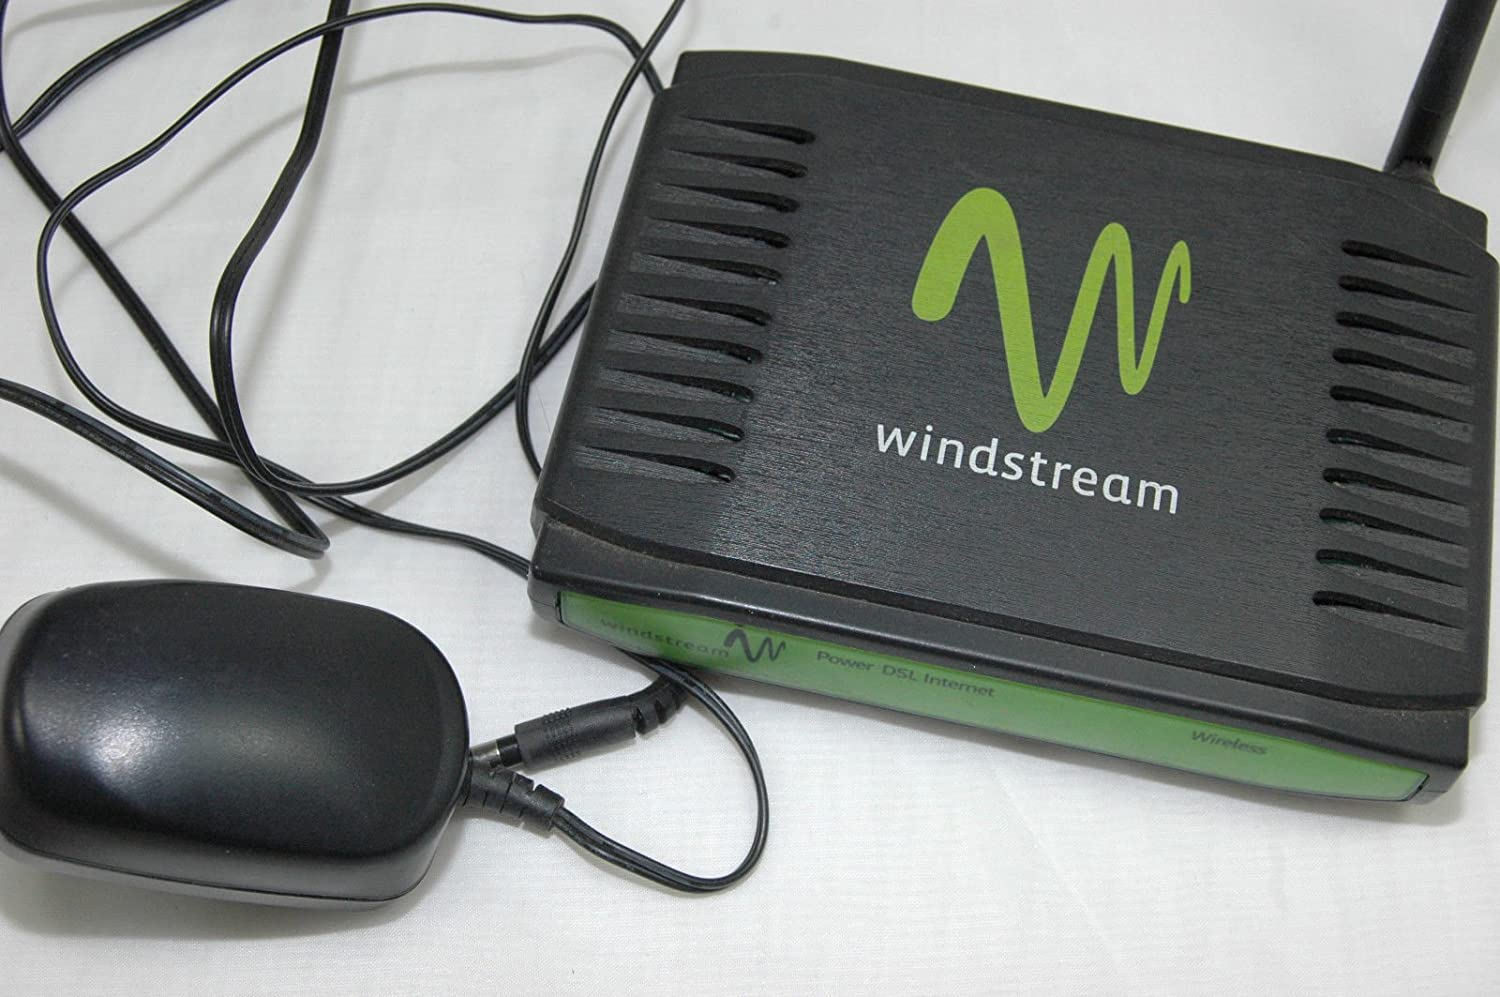 Amazon.com: Windstream Sagemcom 1704 F@st DSL ADSL2 Wi-Fi Wireless Router/Modem: Computers & Accessories